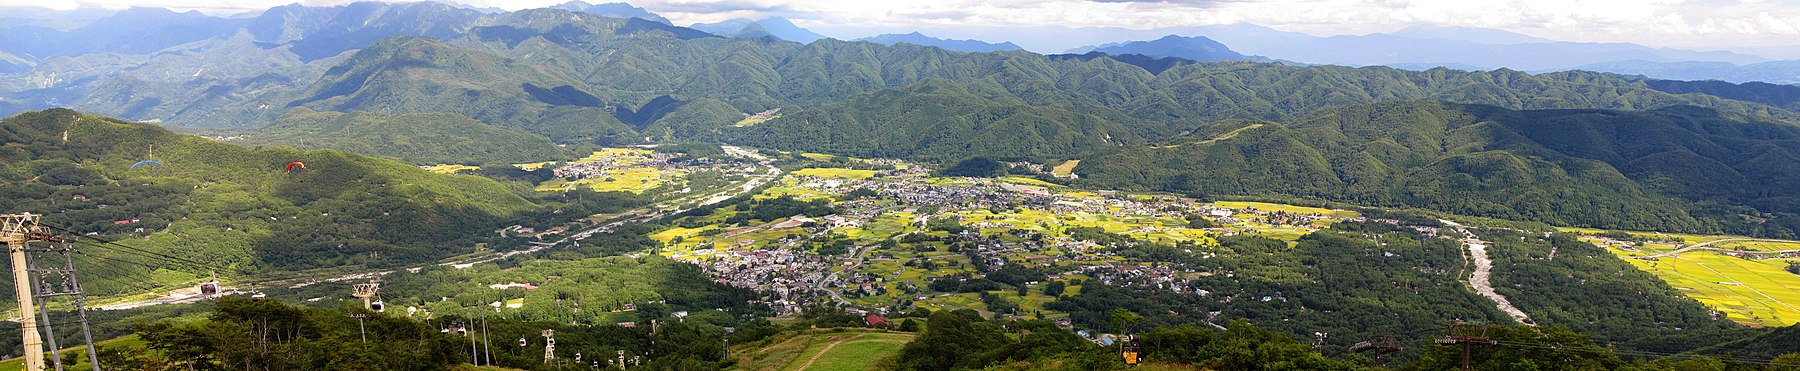 Hokujo, Hakuba, Kitaazumi District, Nagano Prefecture 399-9301, Japan - panoramio.jpg